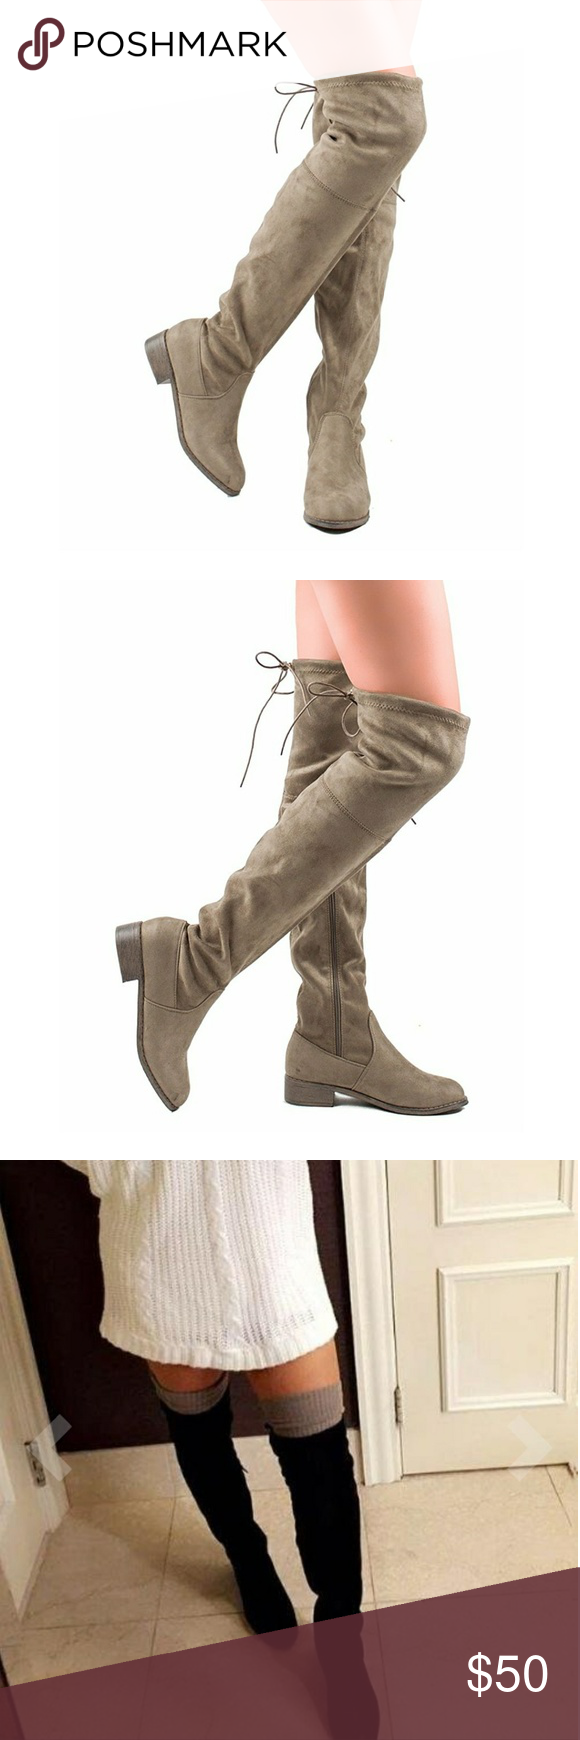 Boots Very cute women boot drawstring stretch faux suede, over the knee zip up long boot. *Only been used one in excellent conditions Shoes Over the Knee Boots